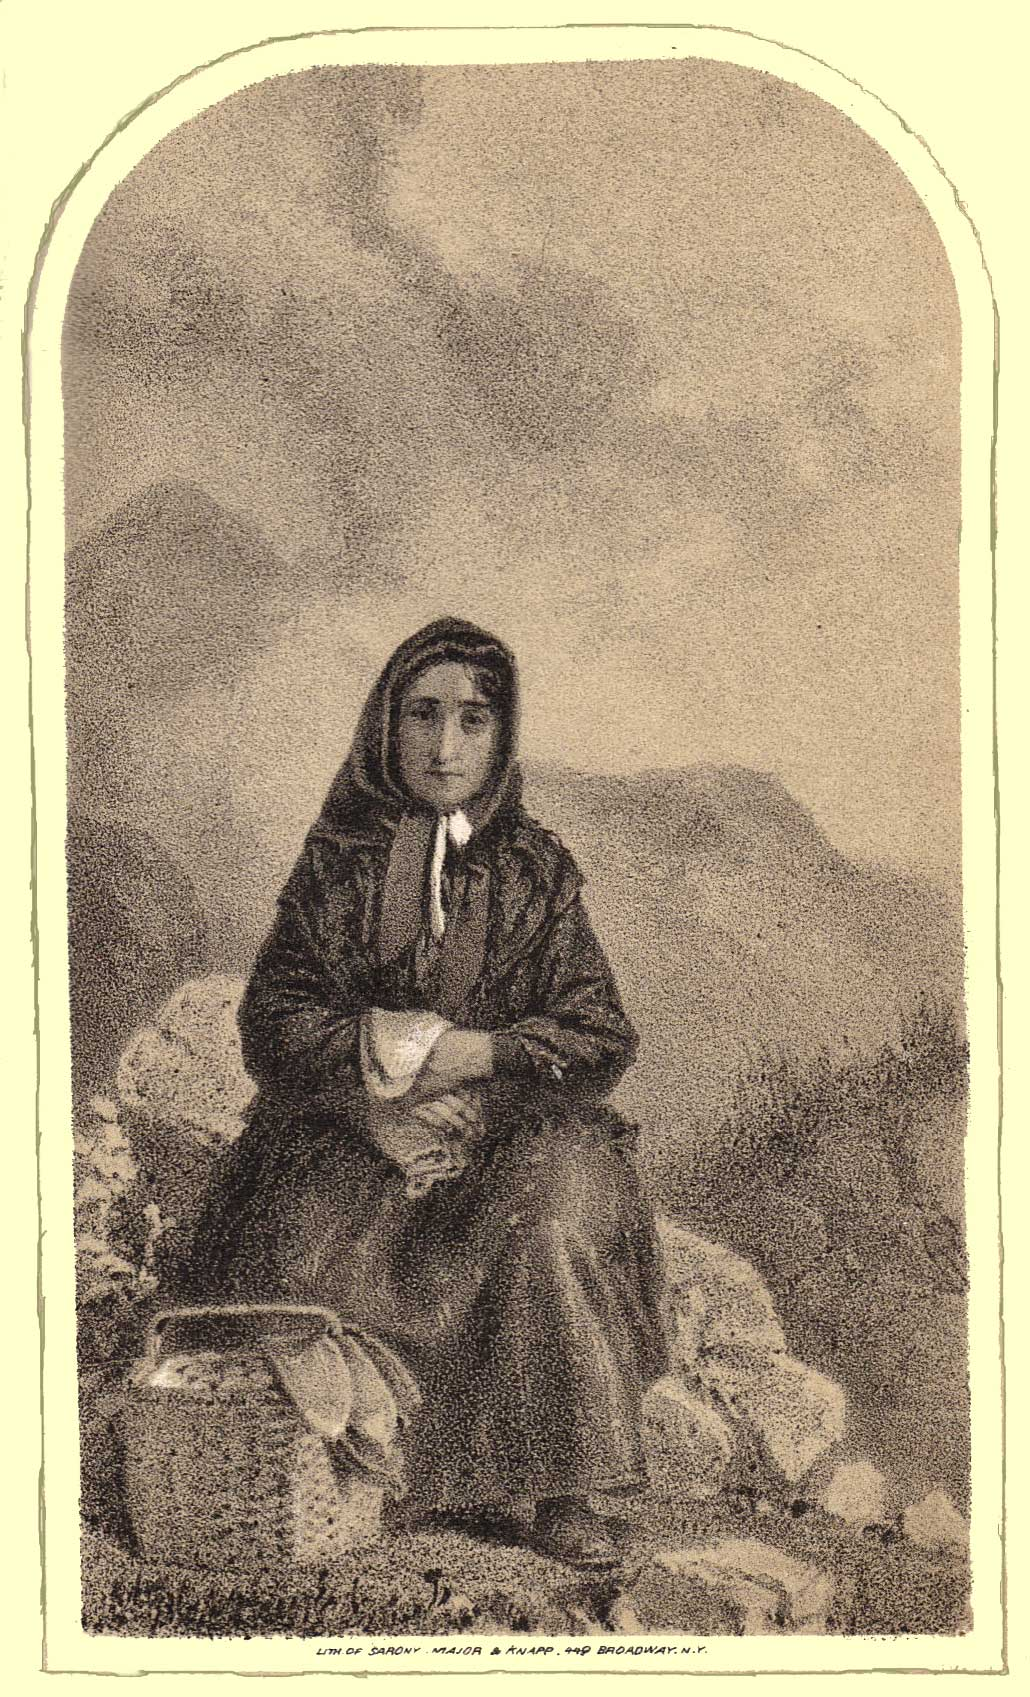 Ambrotype of an Acadian matron, retouched by Sarony in dark clothes seated on a rock with a basket at her feet.  Mountains are in the background.